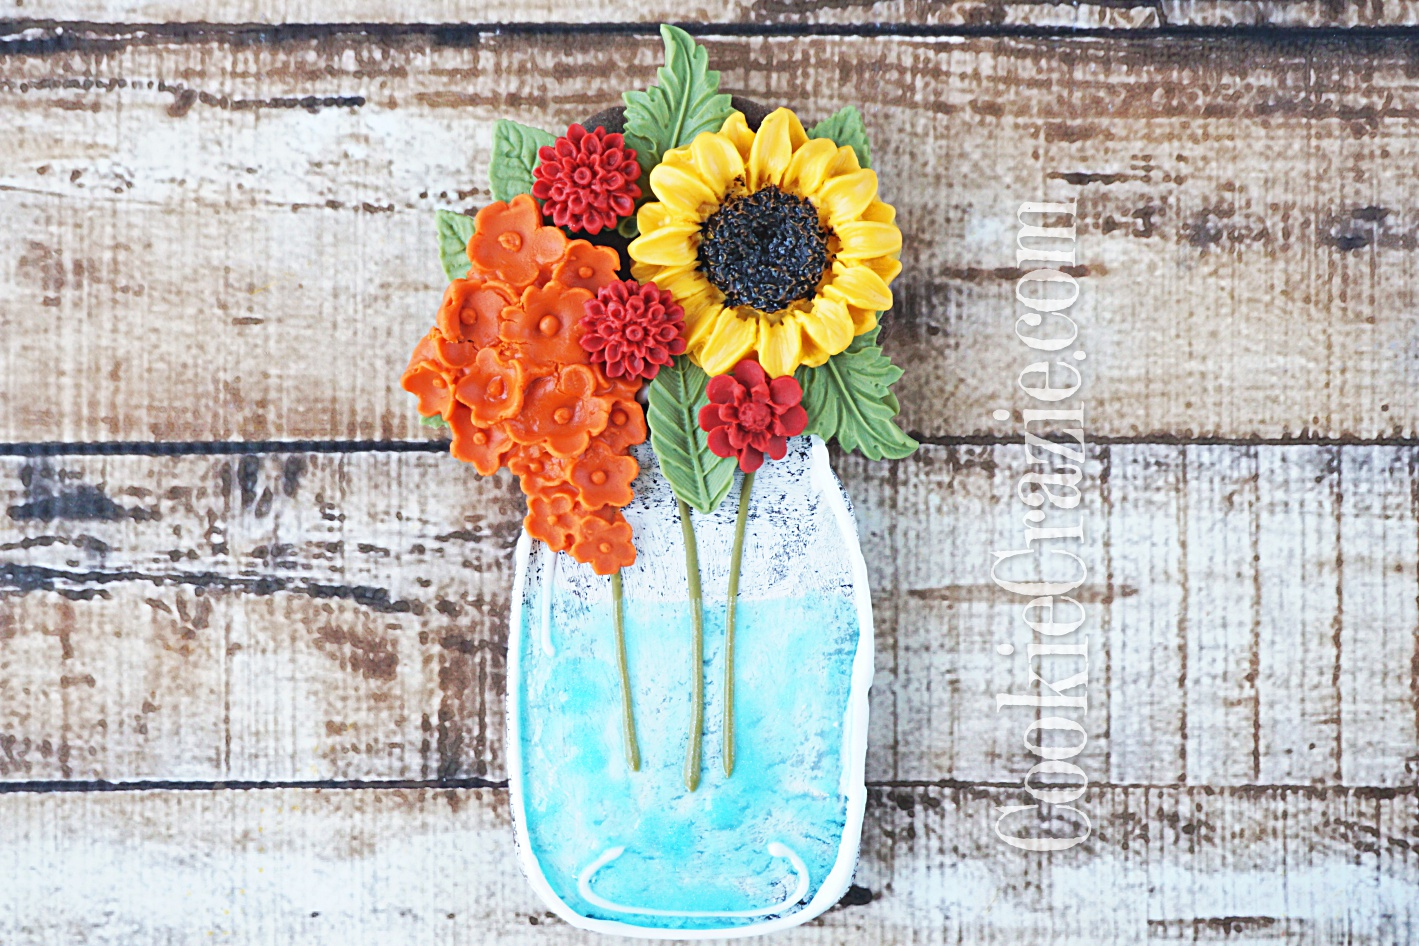 Mason Jar Fall Bouquet Decorated Sugar Cookie YouTube video (Click on Photo)